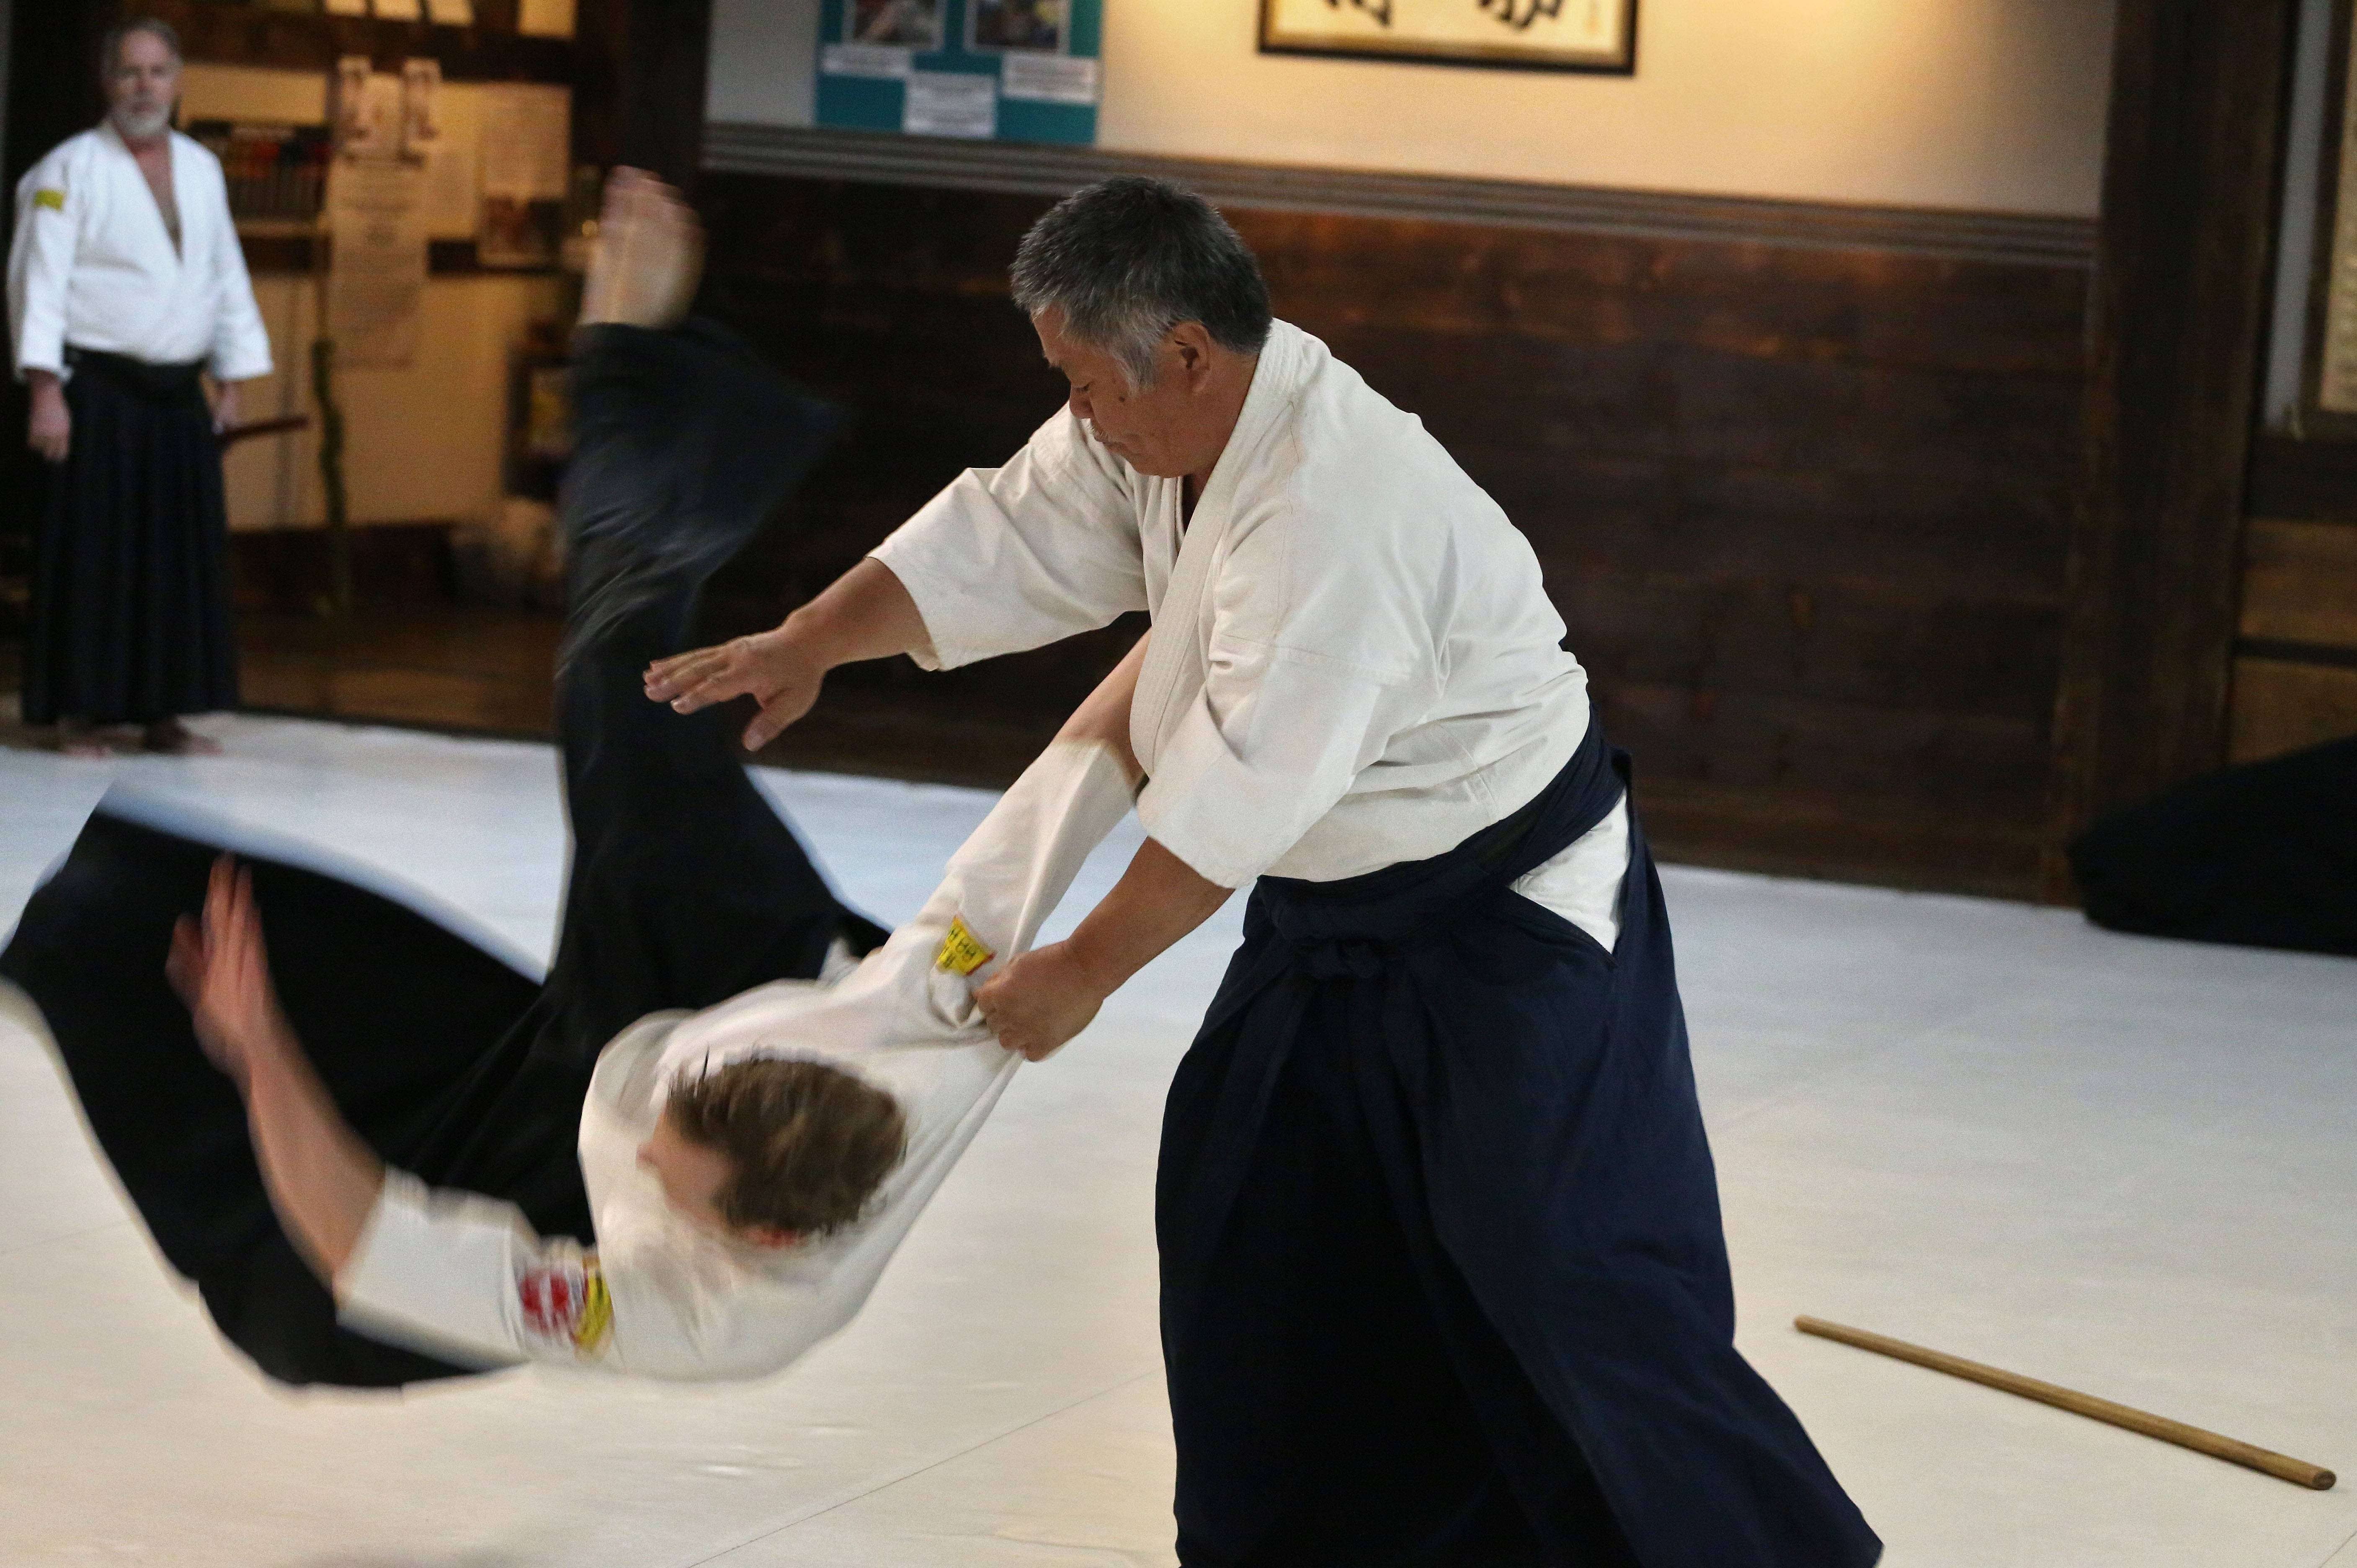 Domo owner and Aikido instructor Gaku Homma Sensei flips an advanced Aikido student during a seniors class he teaches at his Aikido center, adjacent to his restaurant in Denver. Homma has shaped Domo into a place where you can immerse yourself in Japanese culture, by visiting a museum that evokes a northern Japanese farmhouse, strolling in a garden studded with Buddha statues or even taking a martial arts class in the converted former warehouse where the restaurant compound is located.